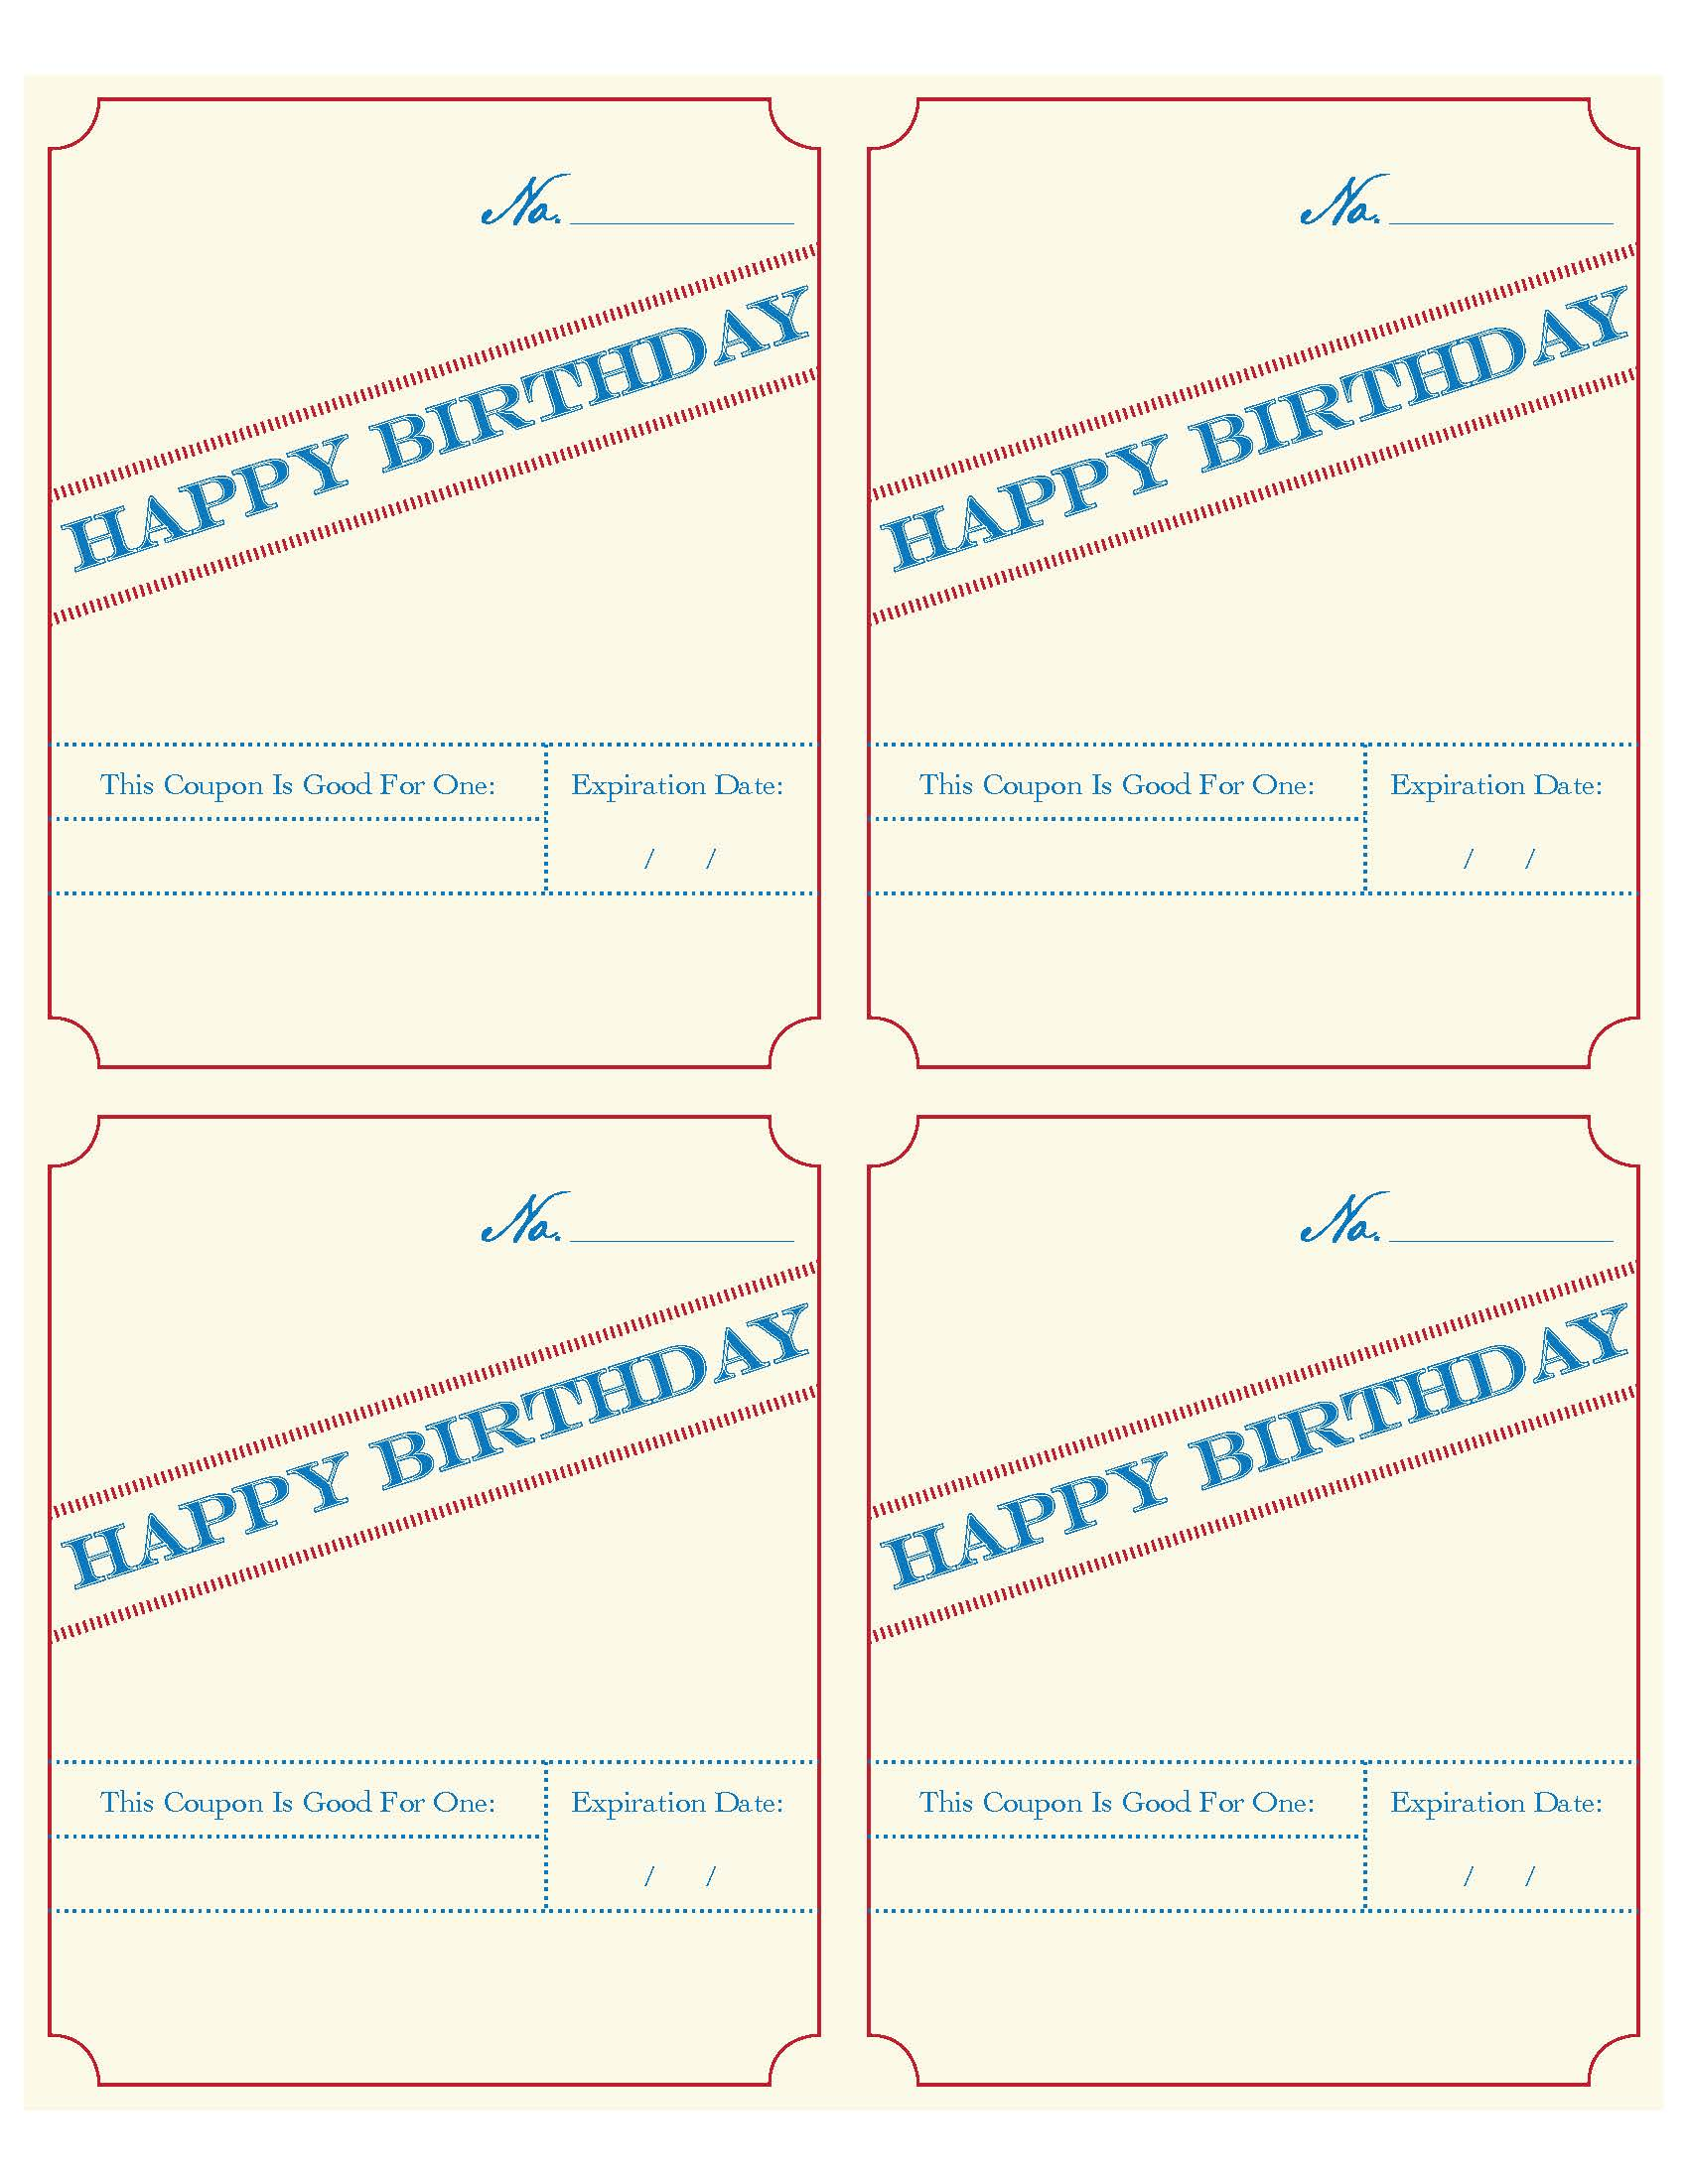 fillable birthday coupon